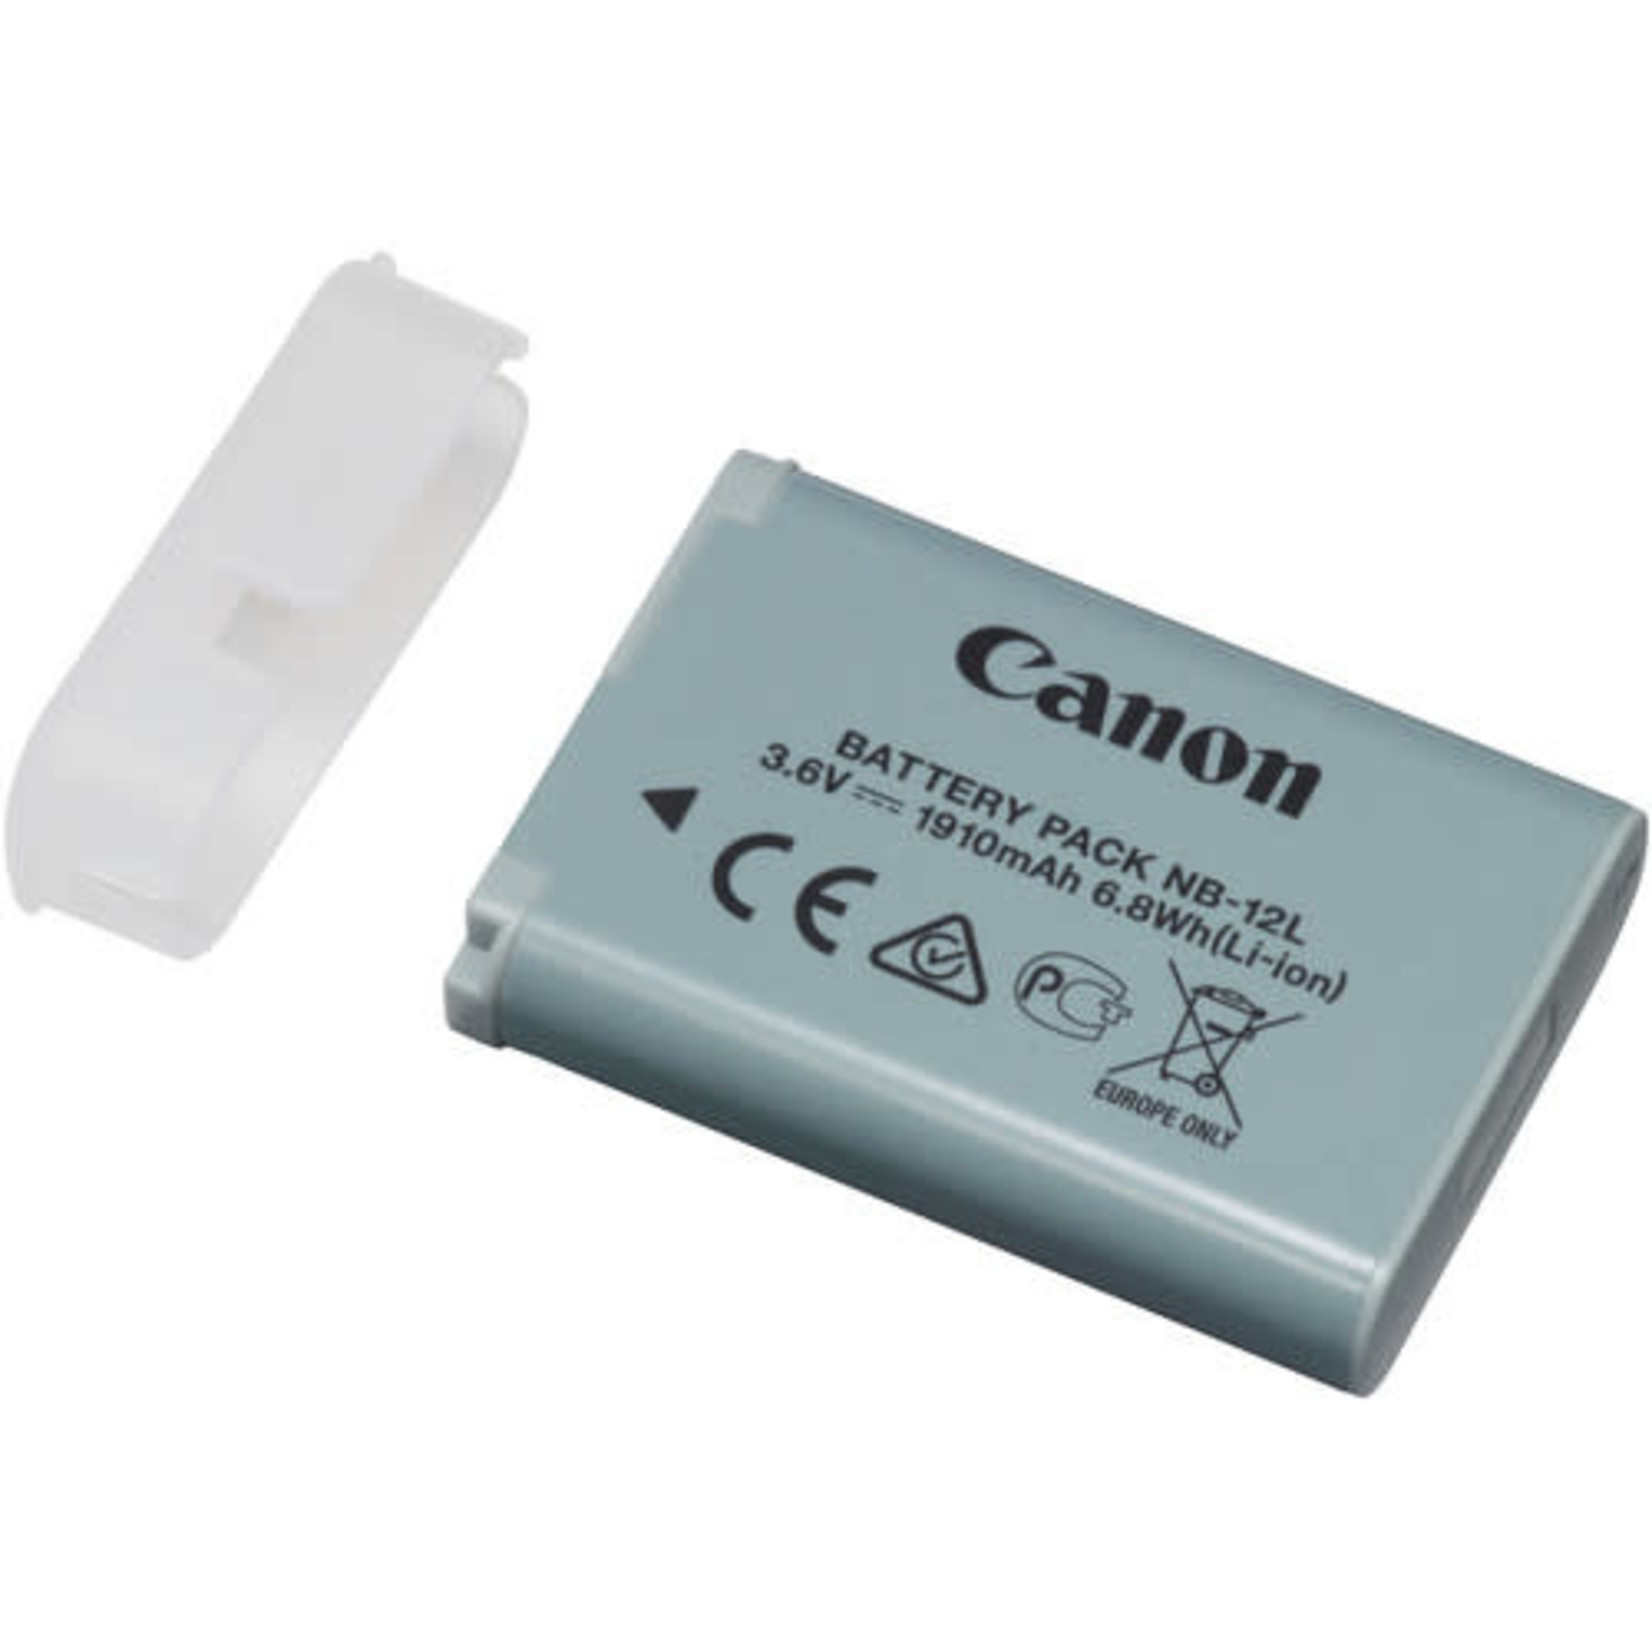 Canon Canon NB-12L Lithium-Ion Battery Pack (3.6V, 1910mAh)